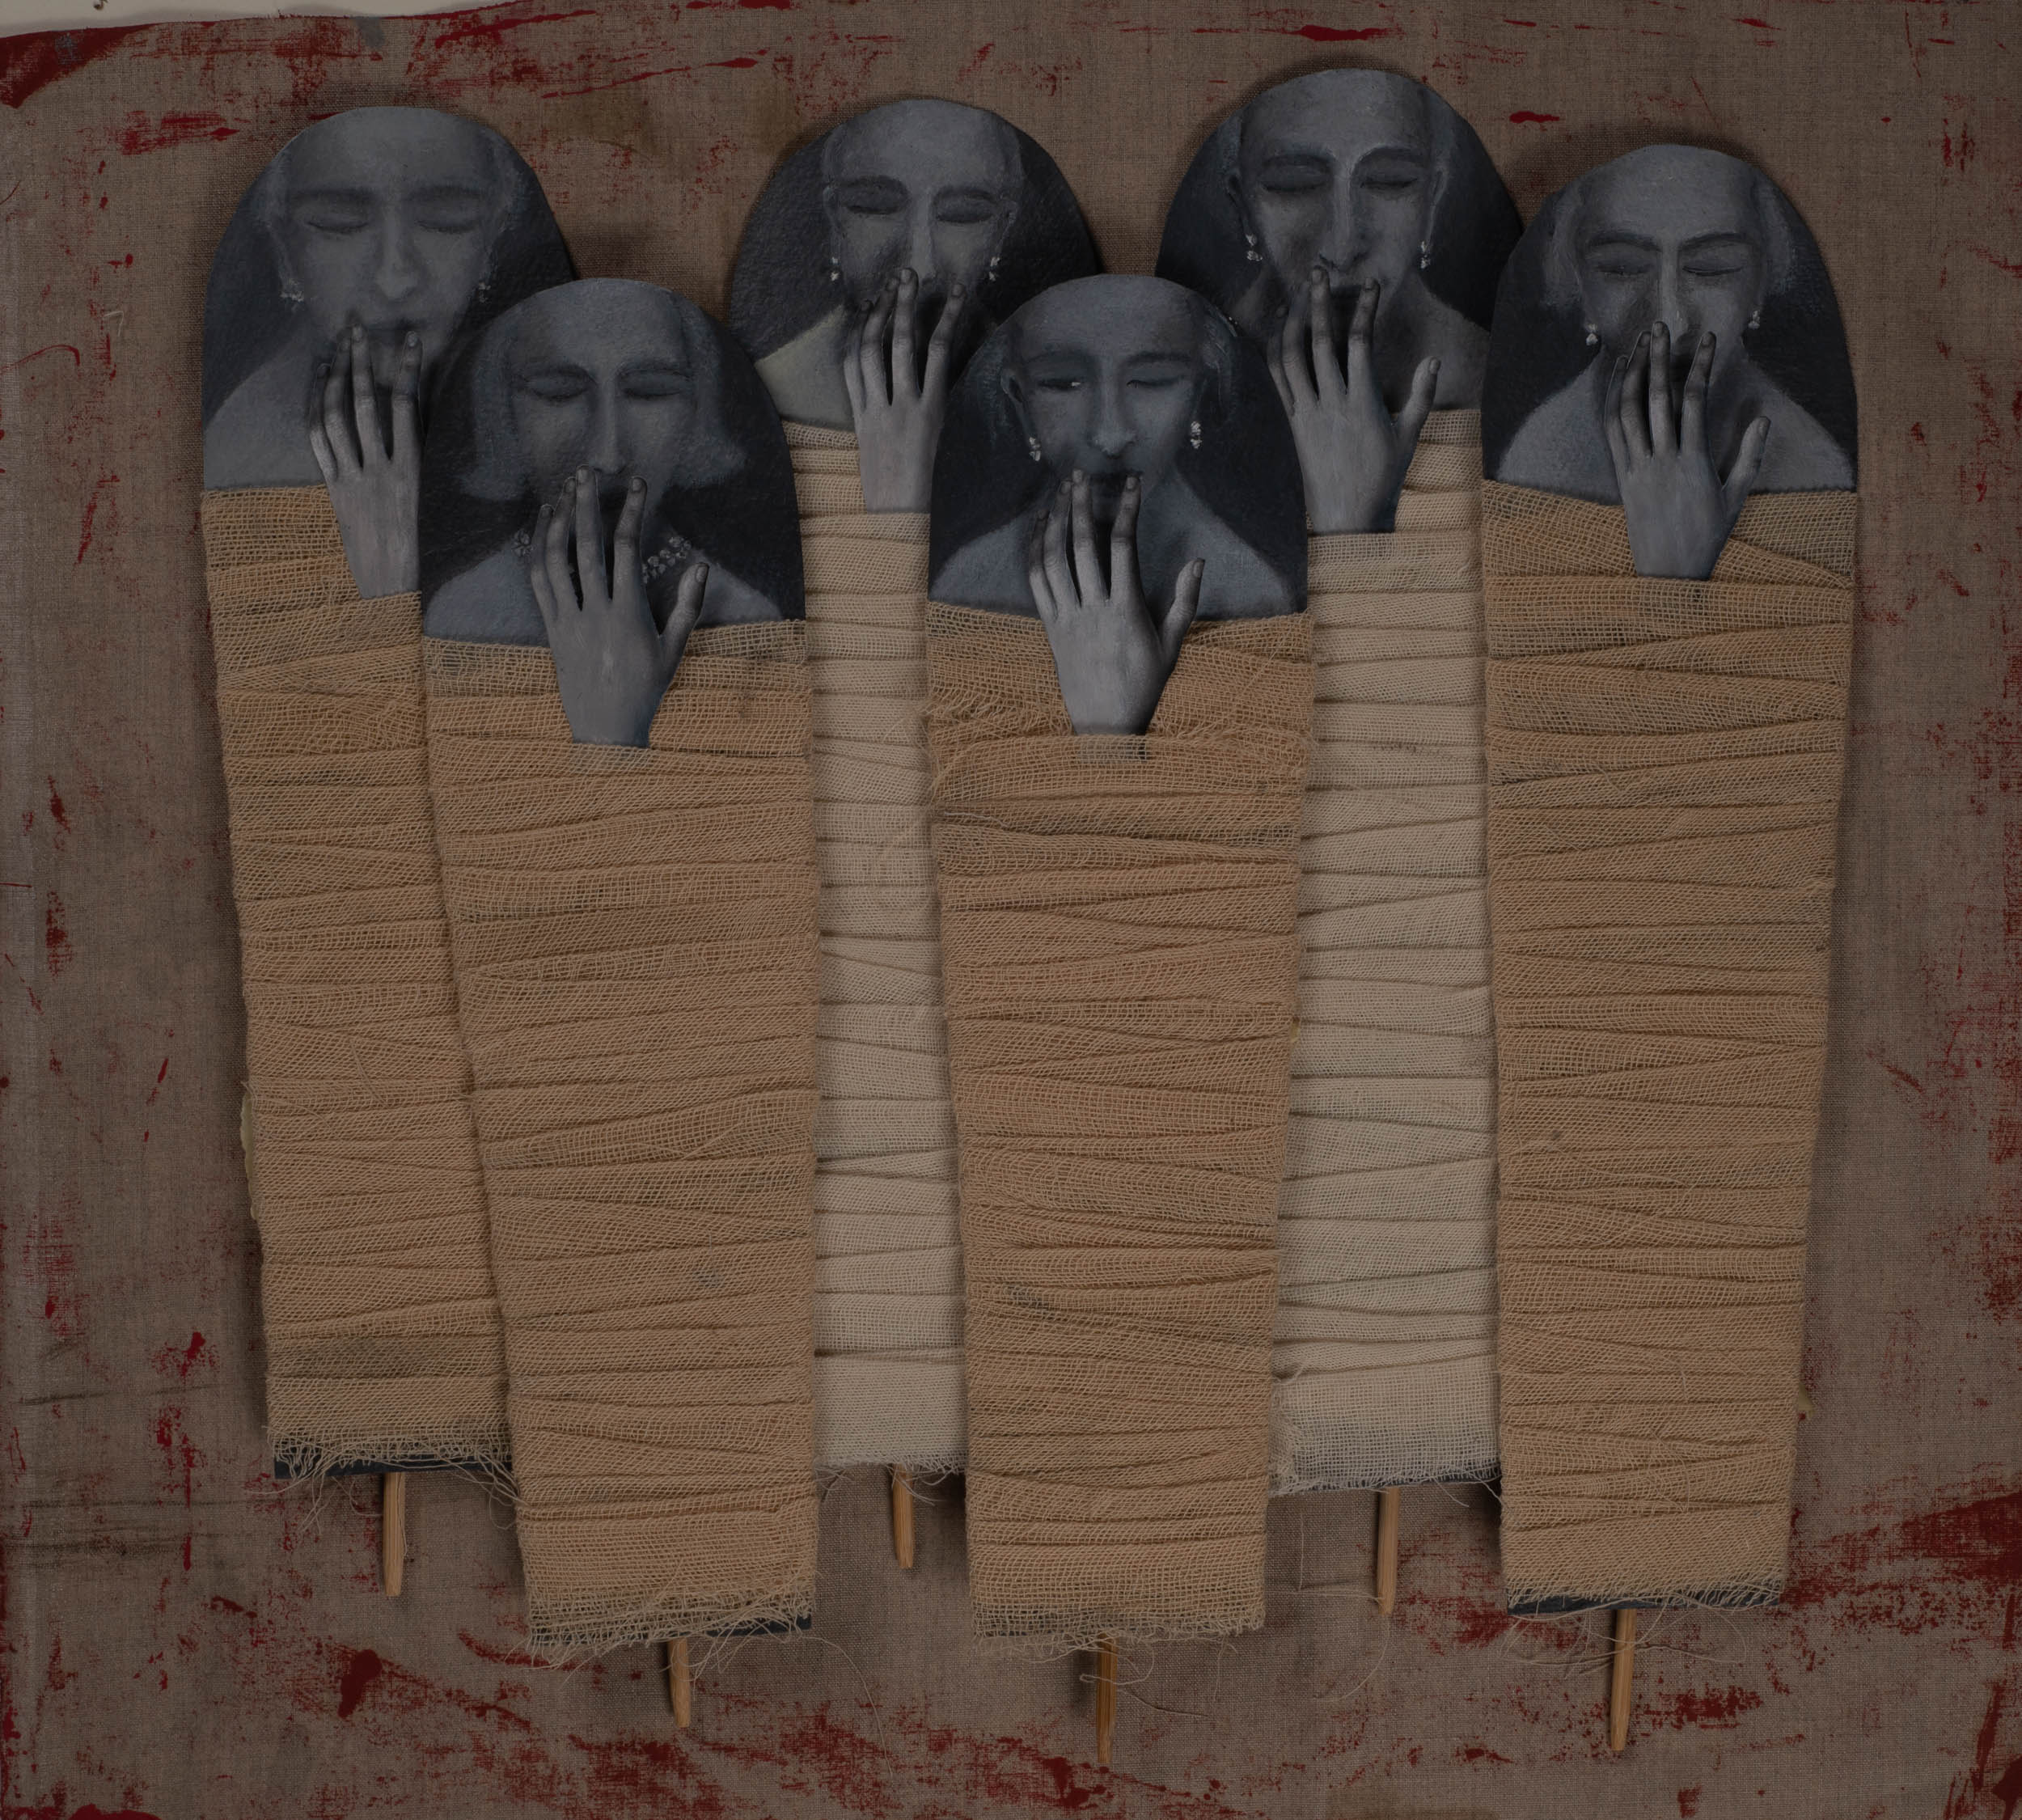 Huda Lutfi, Hand of Silence, 2018. Mixed media, oil on paper, fabric, wood (detail). Courtesy of the artist adn The Third Line.